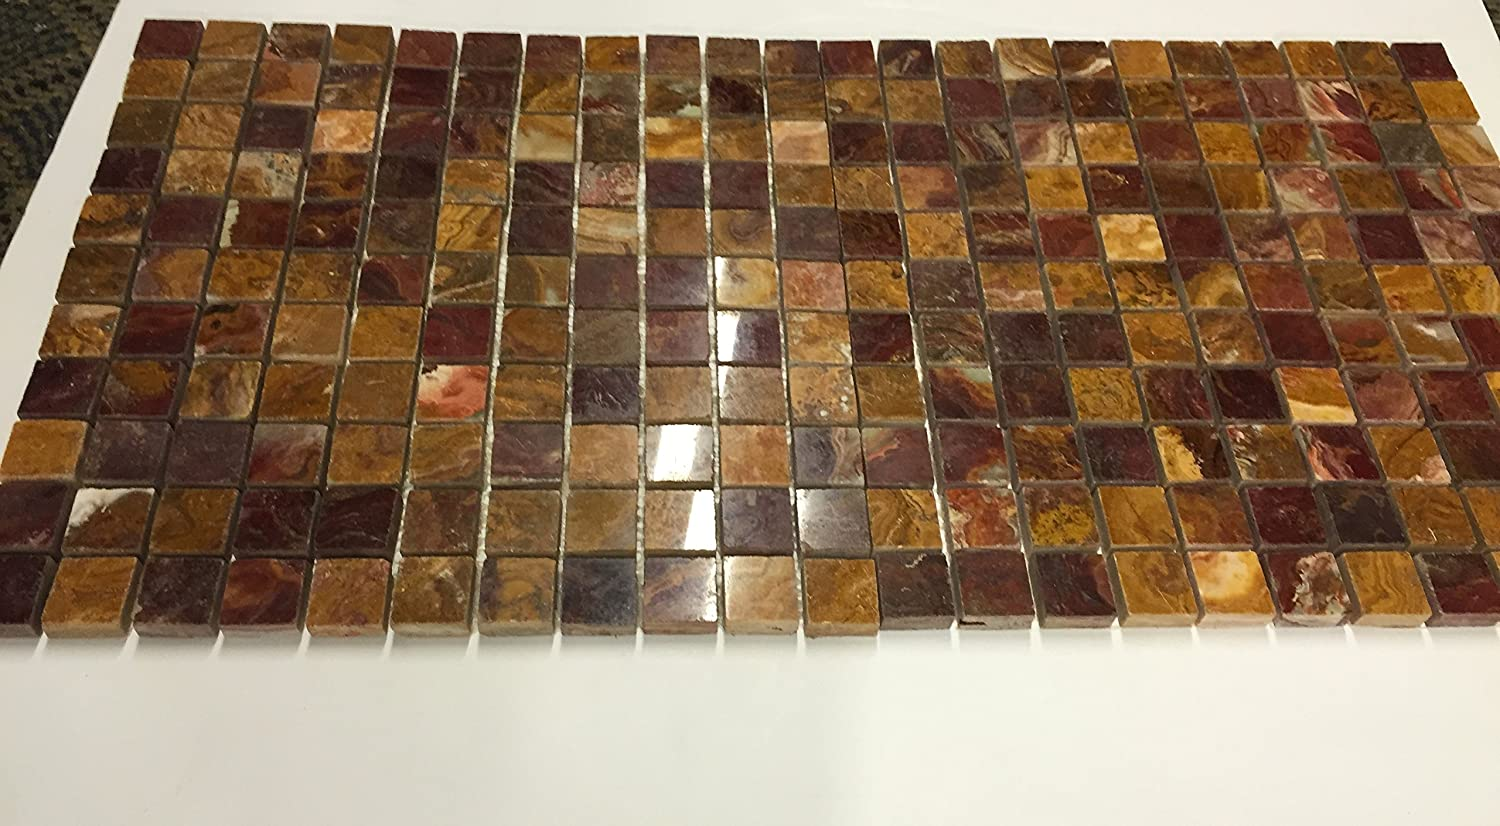 Red onyx 1x1 polished mosaics meshed on 12 x 12 tiles for bathroom red onyx 1x1 polished mosaics meshed on 12 x 12 tiles for bathroom flooring kitchen backsplash shower walls marble tiles amazon dailygadgetfo Image collections